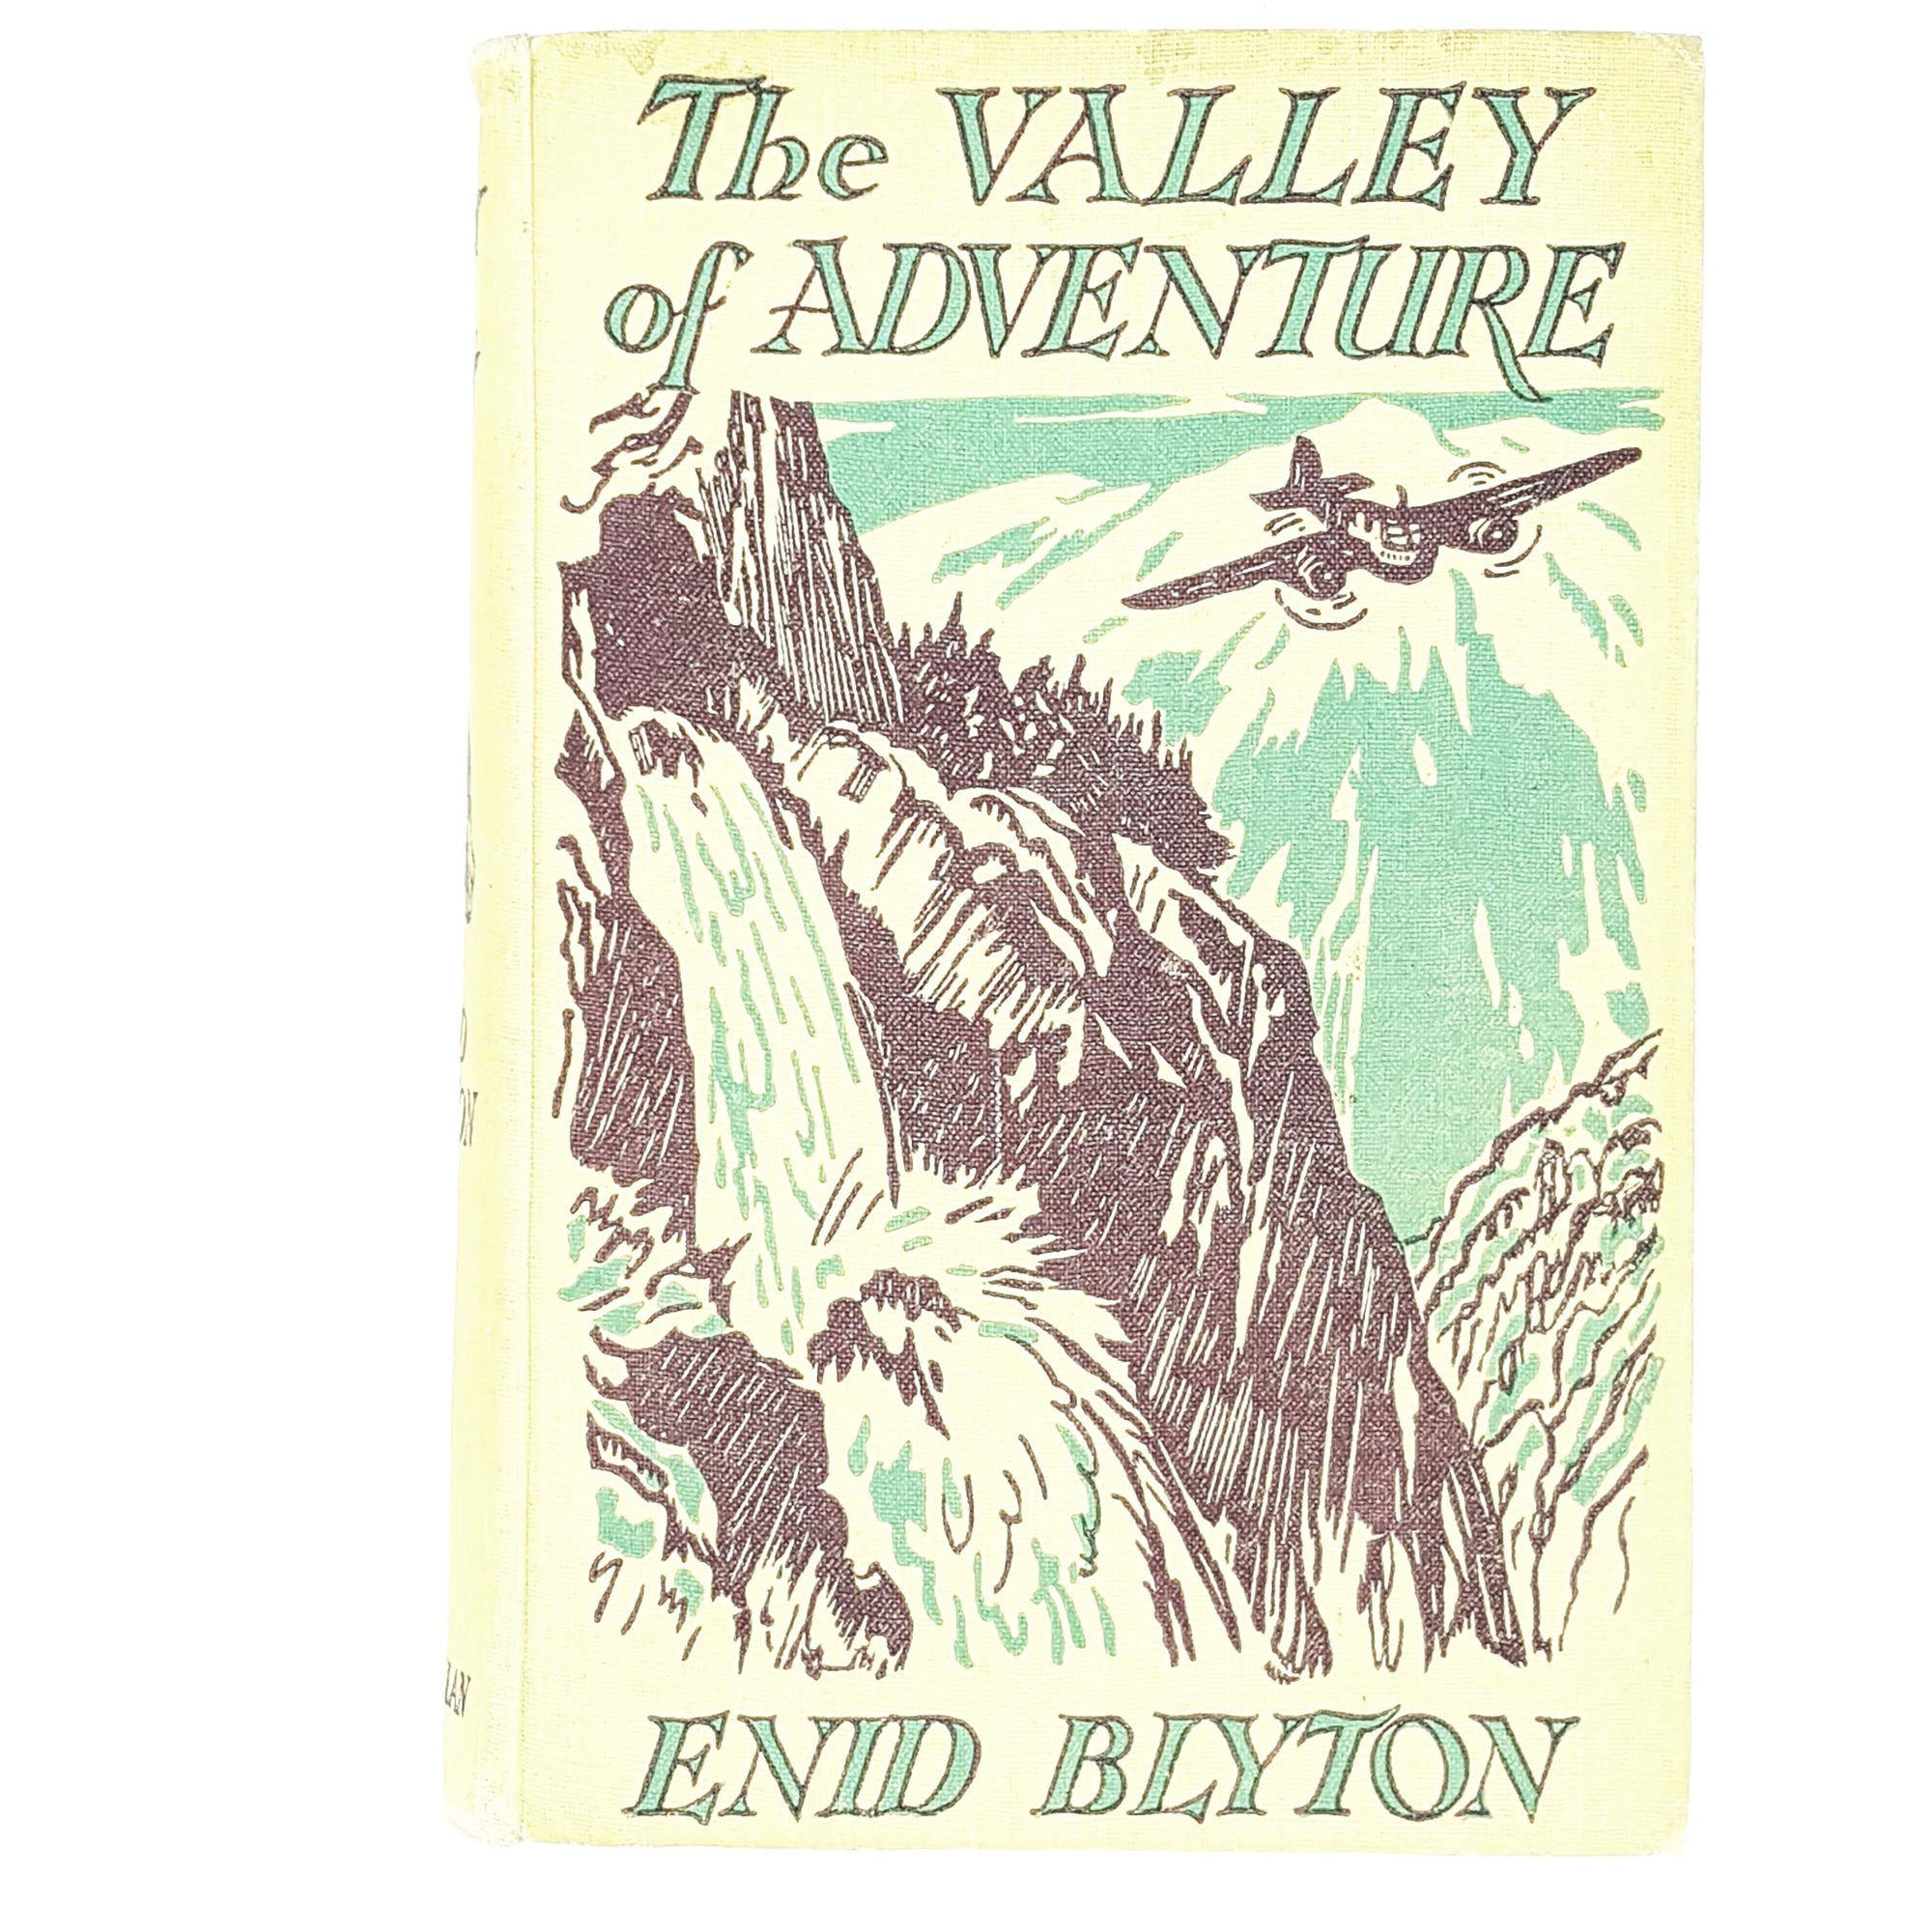 Illustrated Enid Blyton's The Valley of Adventure 1947